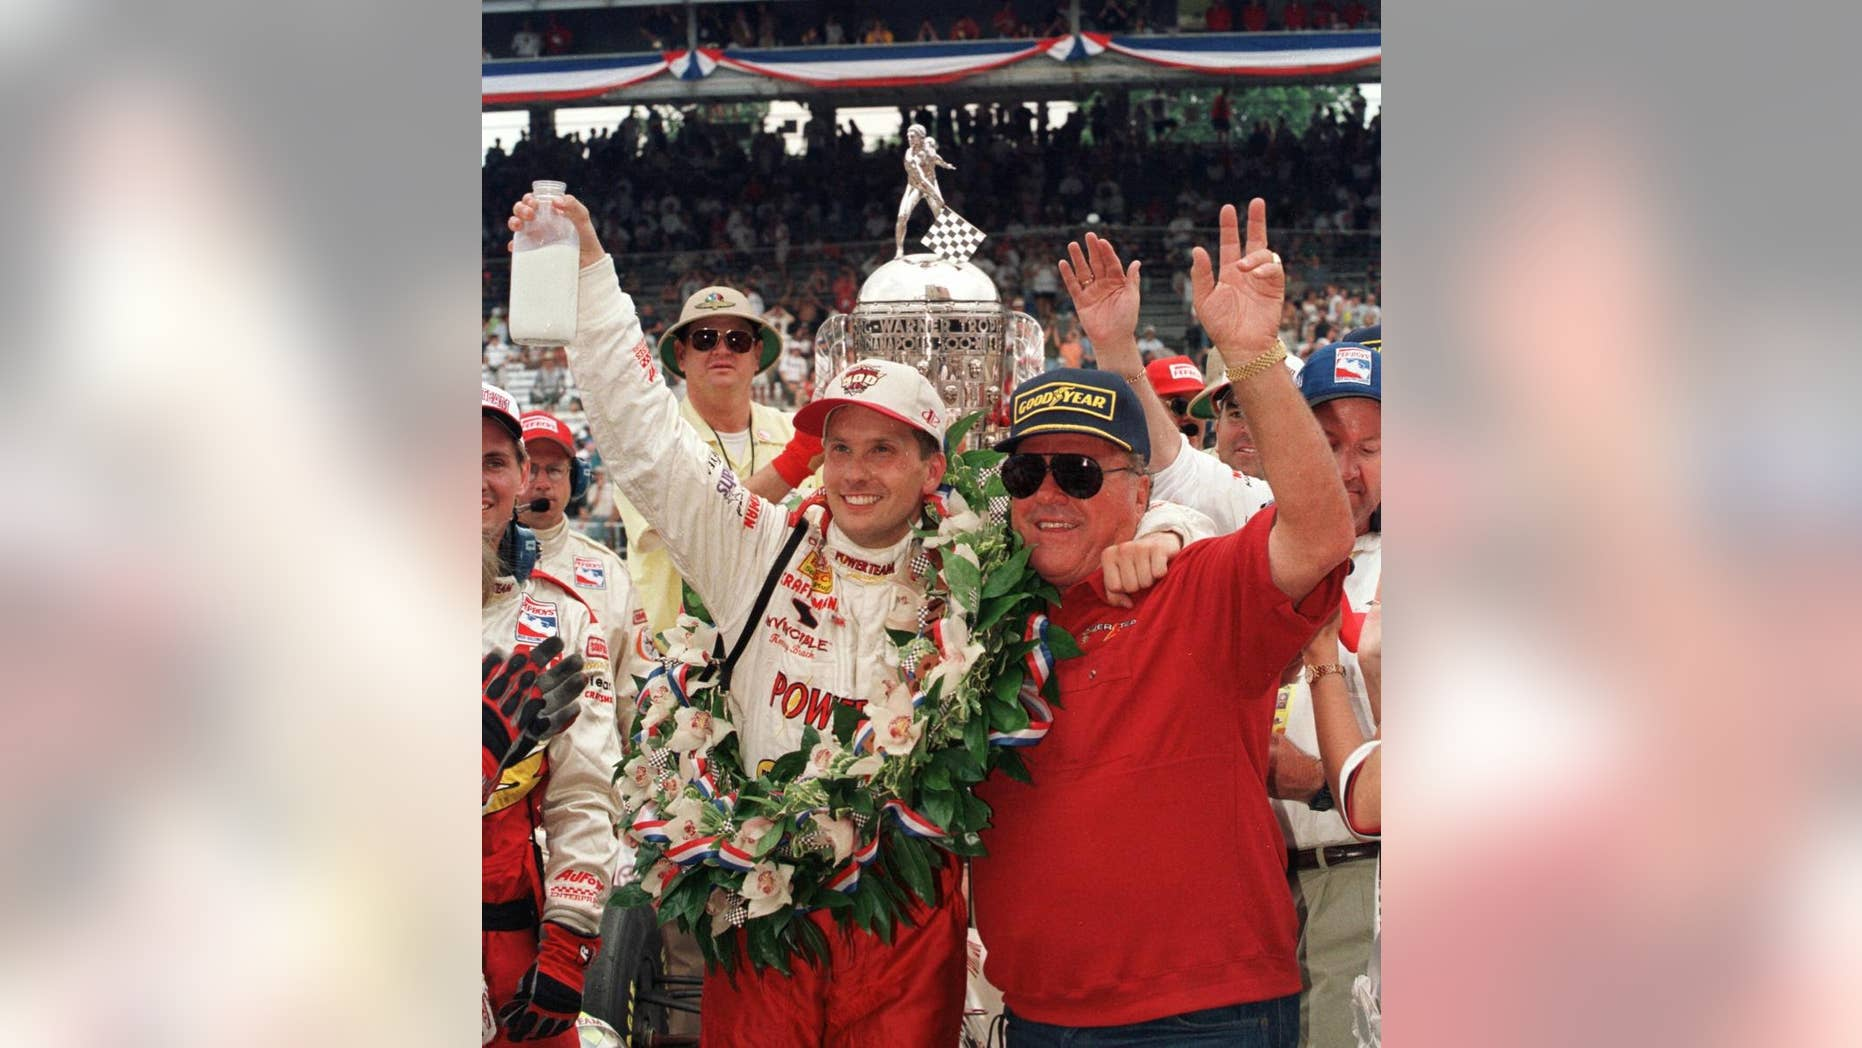 FILE - In this May 30, 1999 file photo, Indianapolis 500 winner Kenny Brack of Sweden, left, and car owner A.J. Foyt of Houston celebrate Brack's win in Victory Lane after the 83rd running of the auto race in Indianapolis.  (AP Photo/Al Behrman, File)